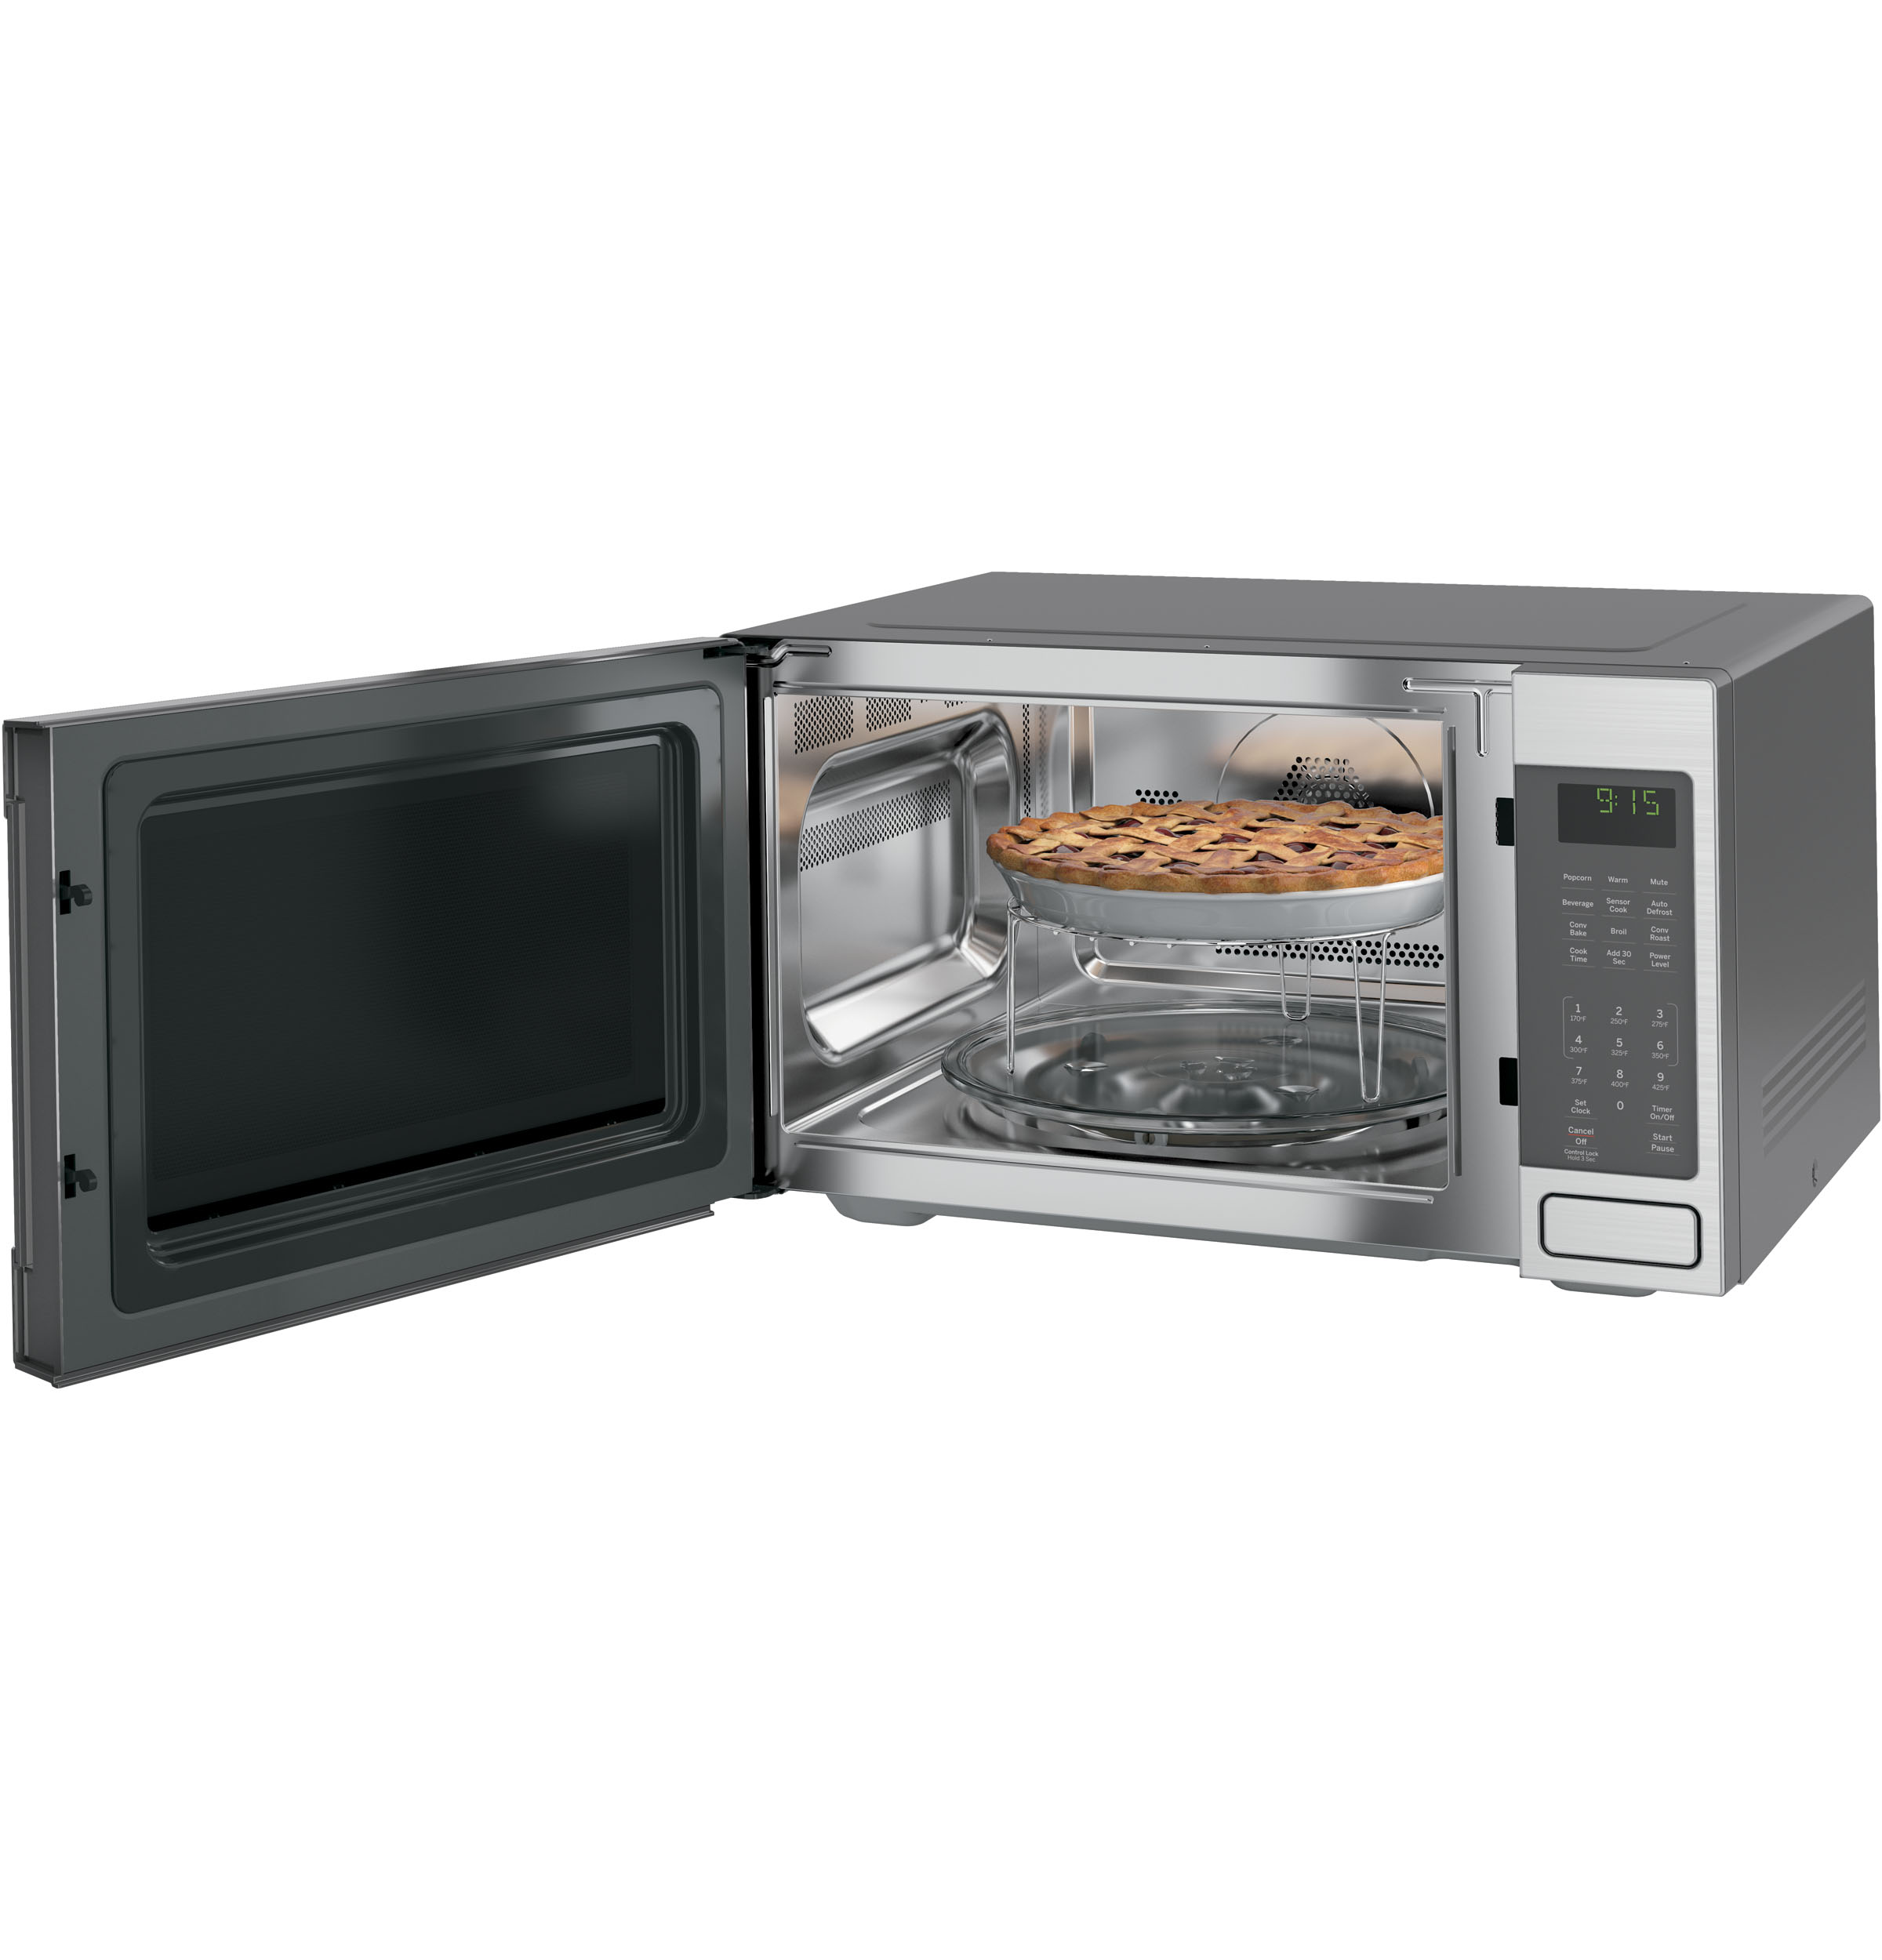 countertops black sharp microwave oven countertop ft cu carousel convection frcpojpeeepw shp ovens